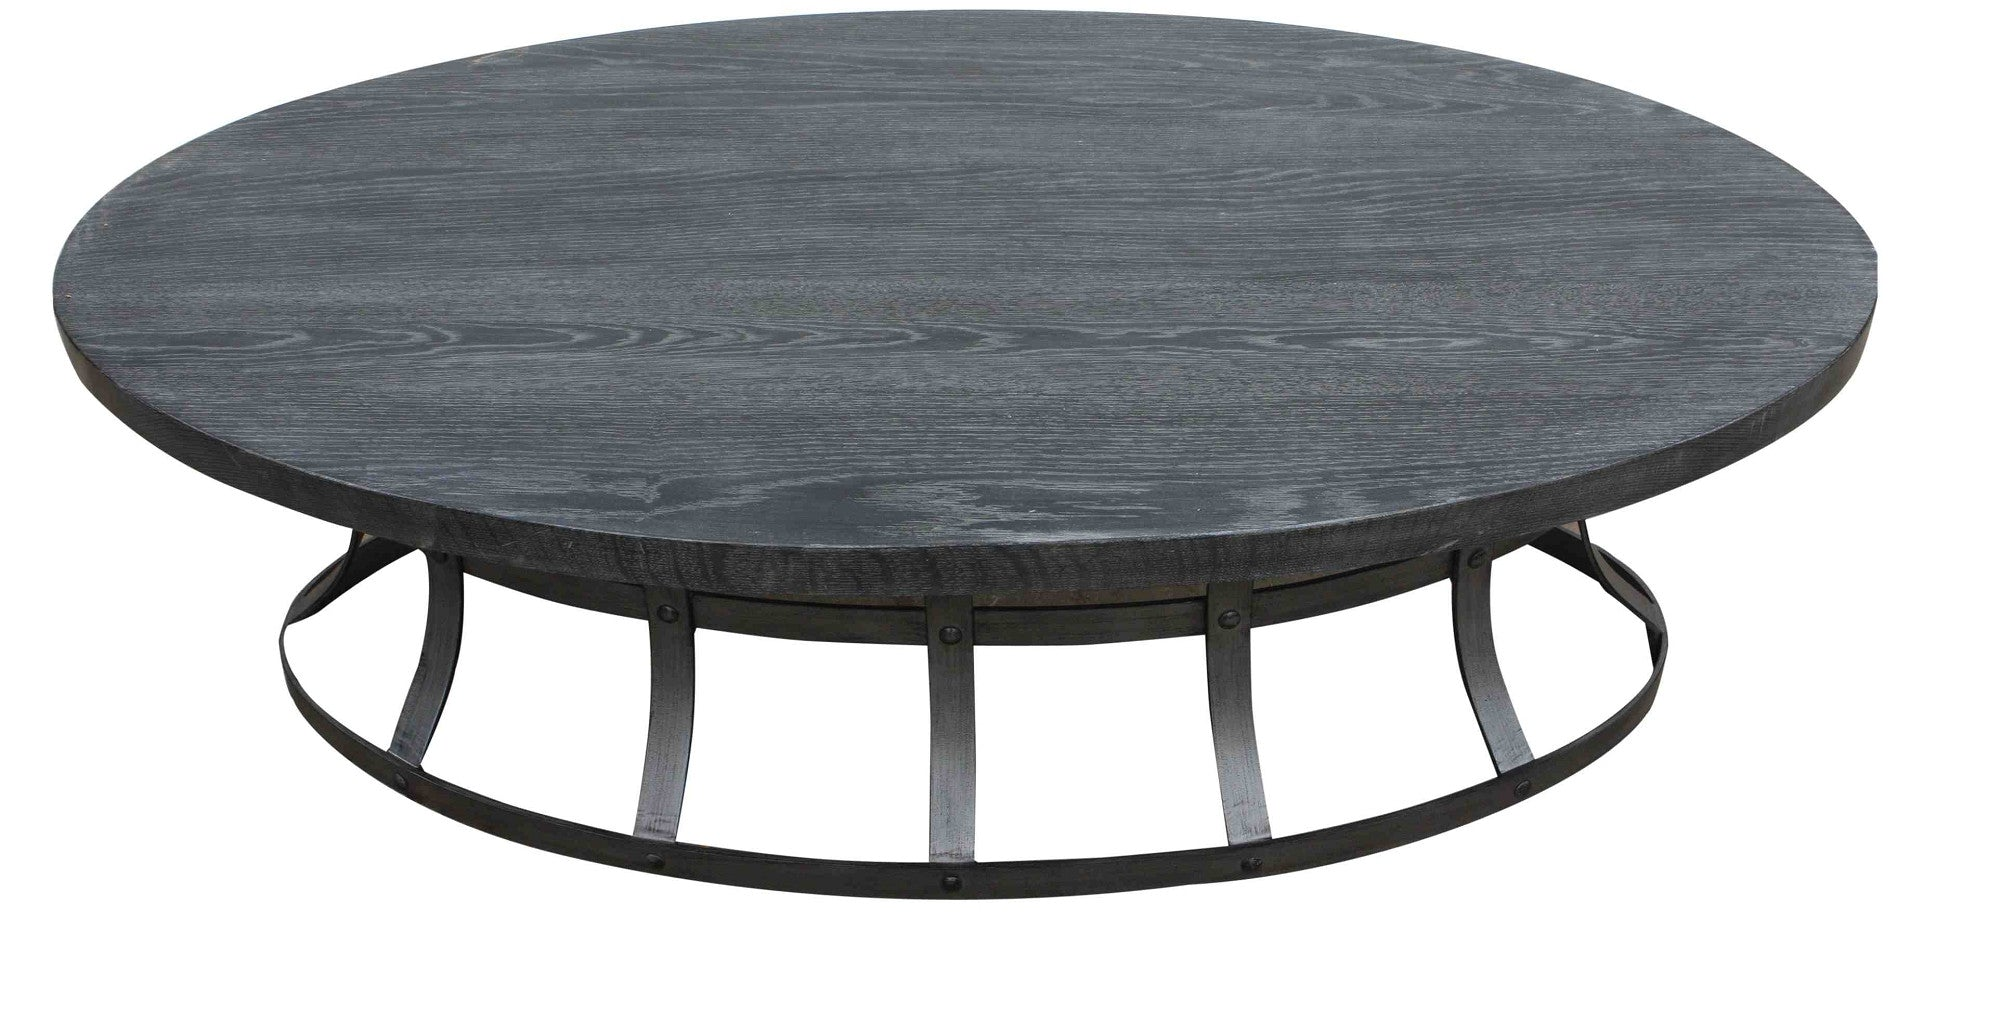 Zuma Grey Oval Coffee Table – Mortise & Tenon